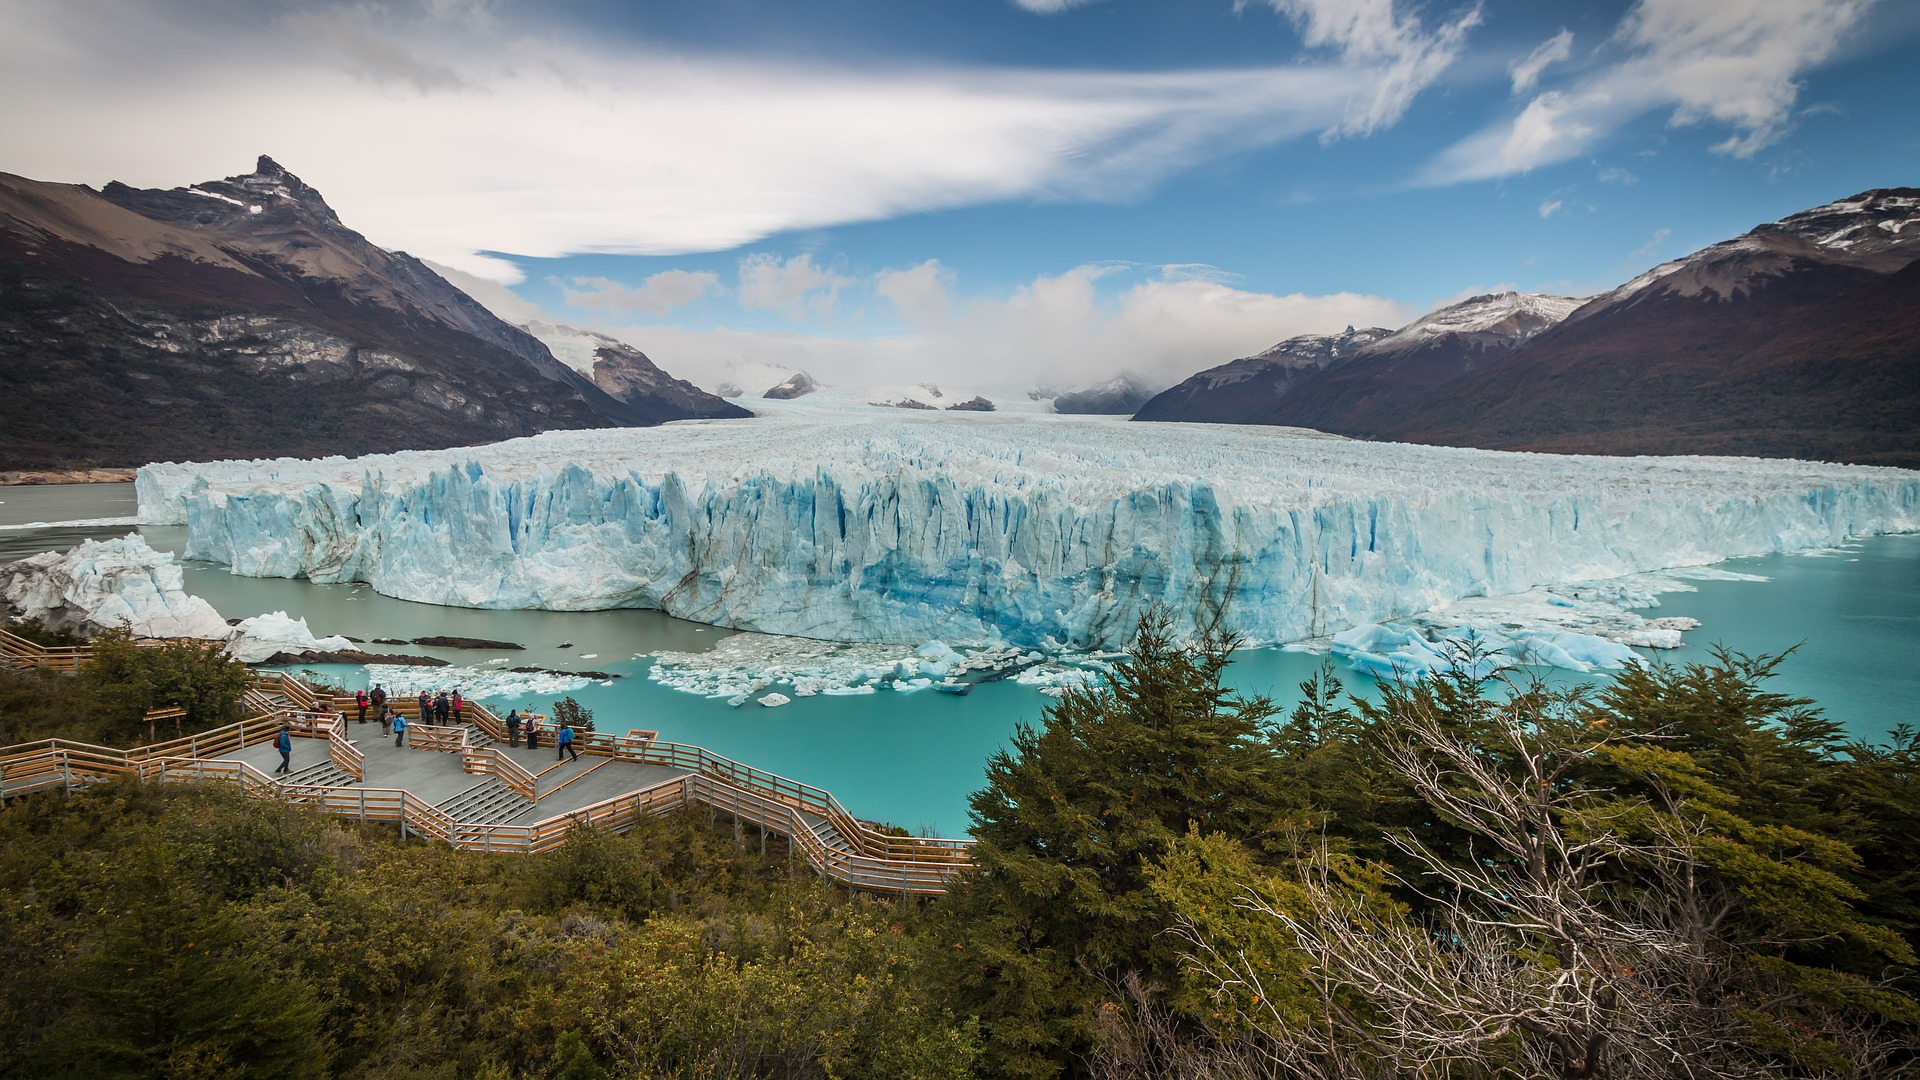 Perito Moreno, Patagonia, Argentina. Here are 3 fun places to visit in Patagonia, Argentina. The best Argentinian Patagonia activities